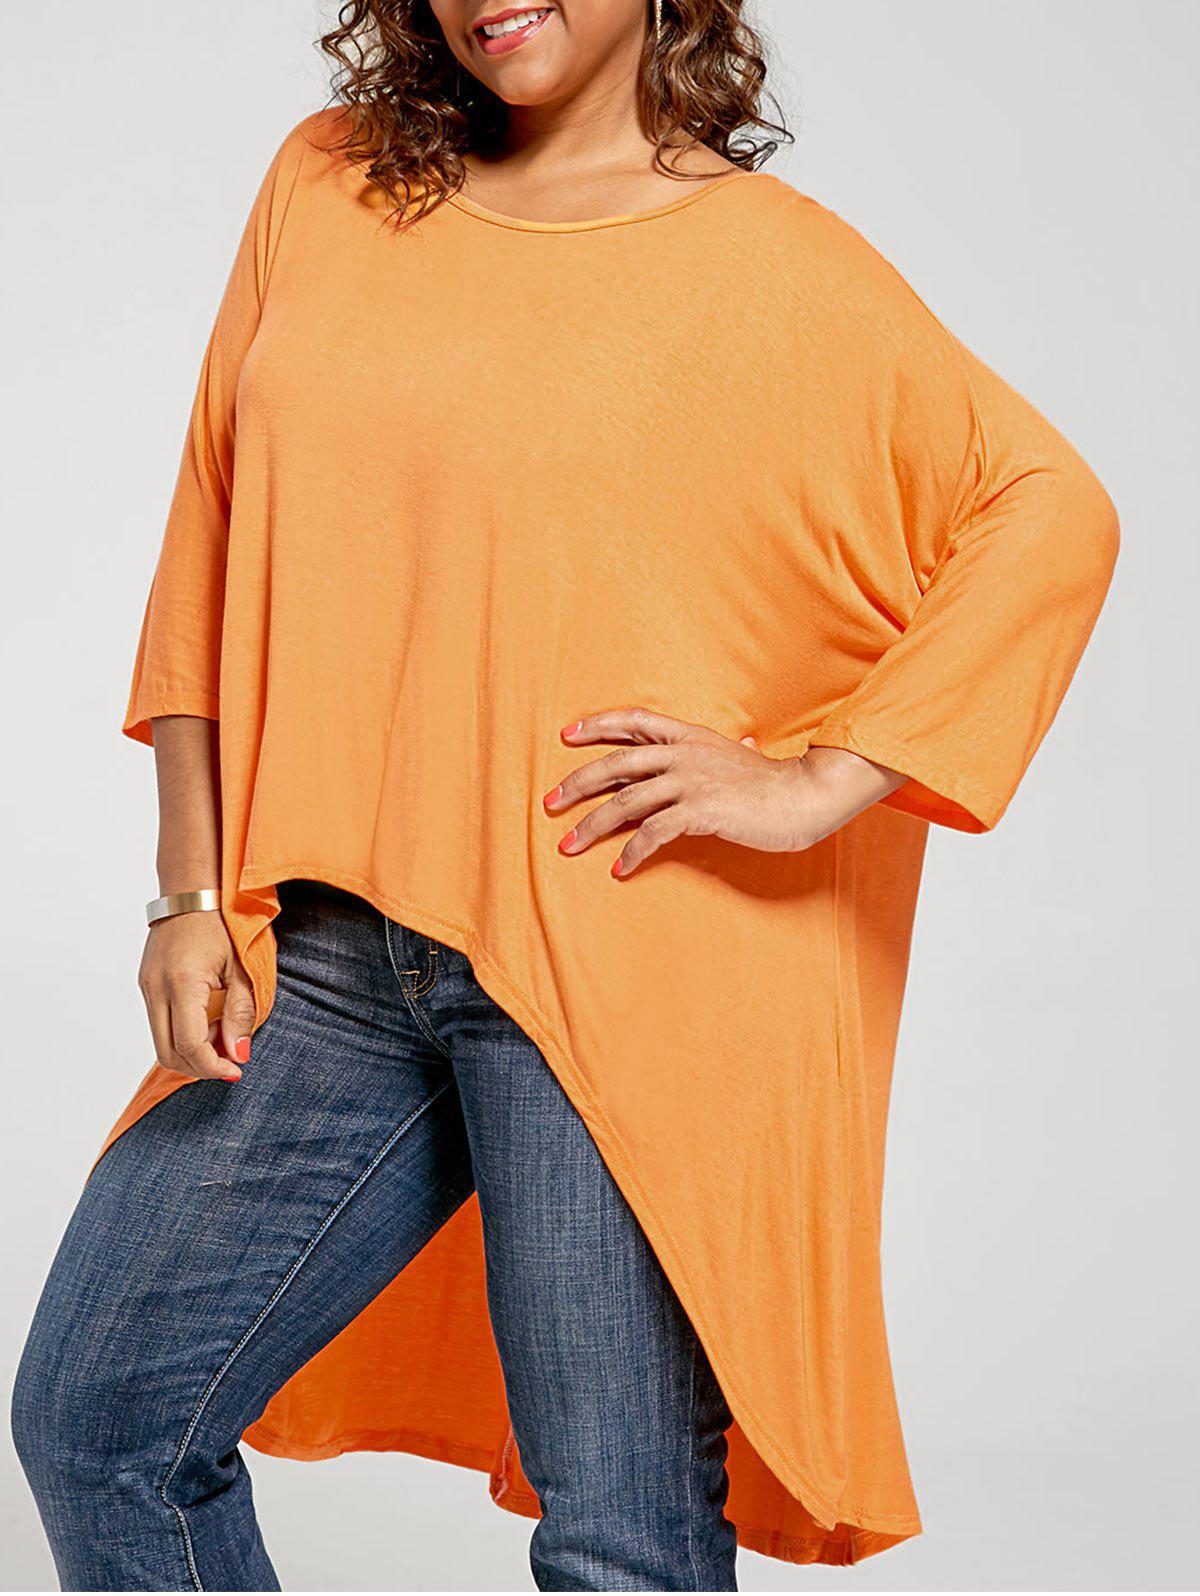 T-shirt Tunique Haut-Bas Grande Taille - Orange 4XL